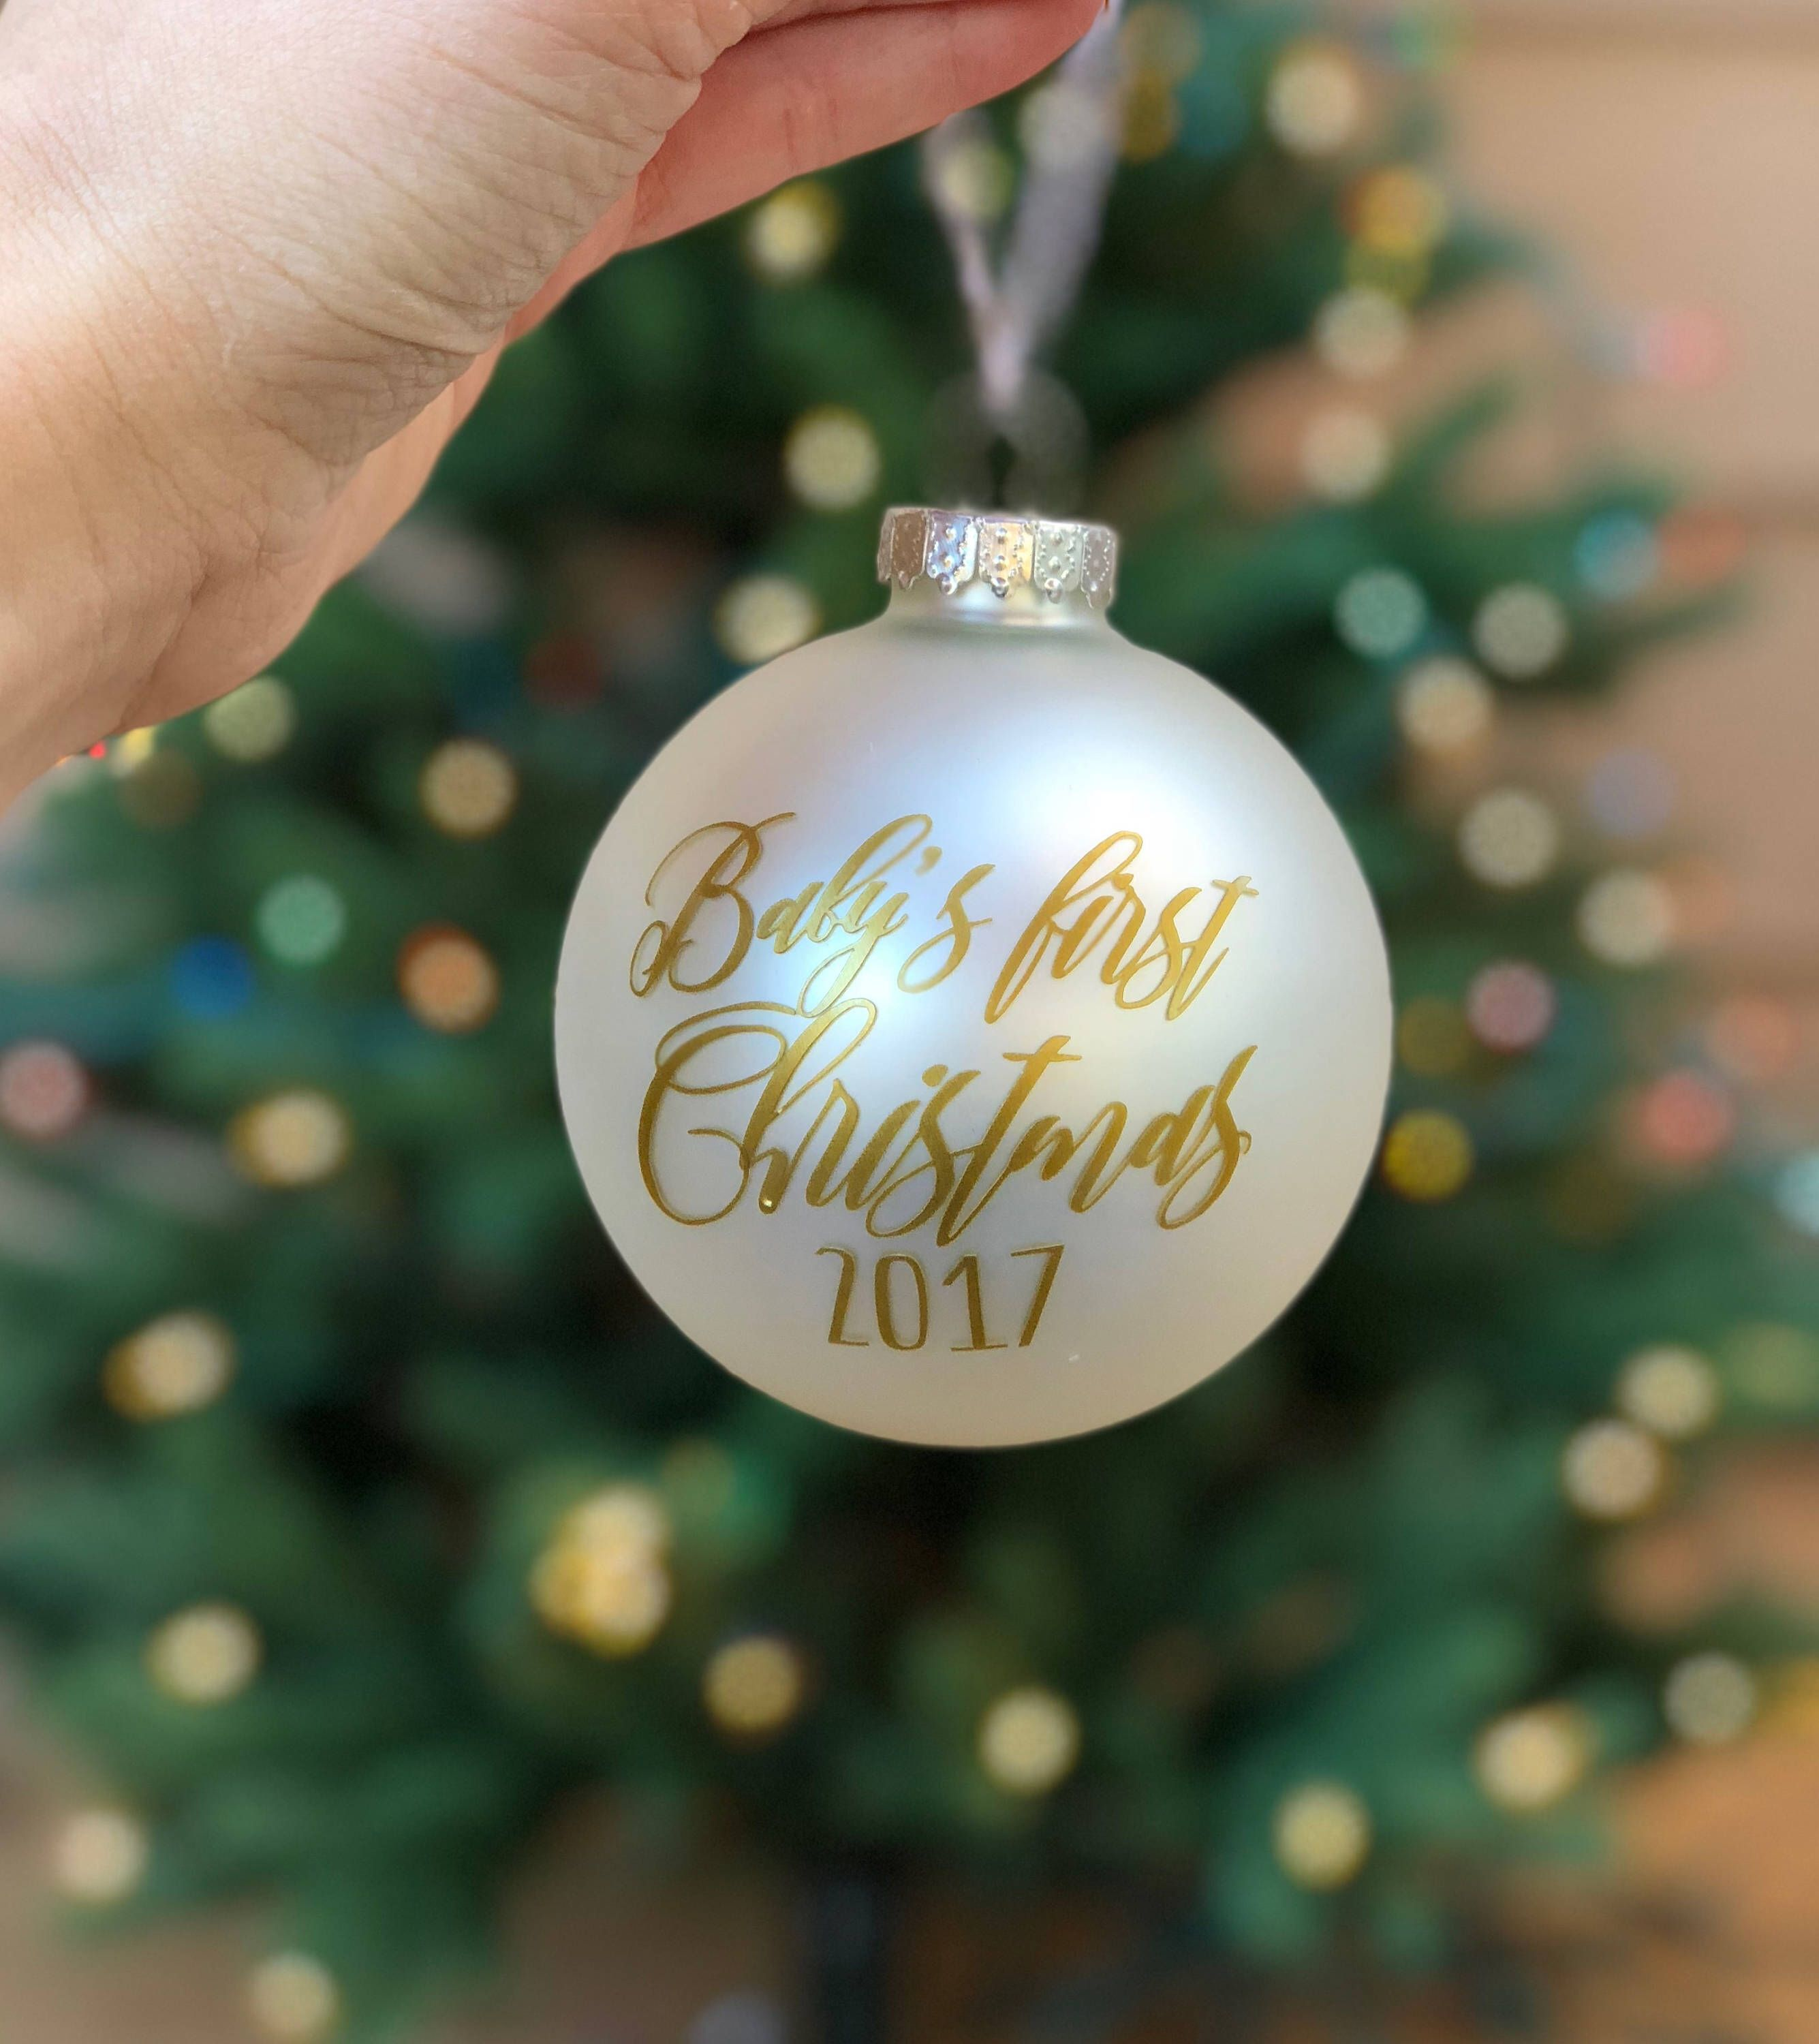 a1805803c7335 Excited to share the latest addition to my #etsy shop: Baby's first  Christmas ornament – Bump's first Christmas - customizable bauble glass  ornament